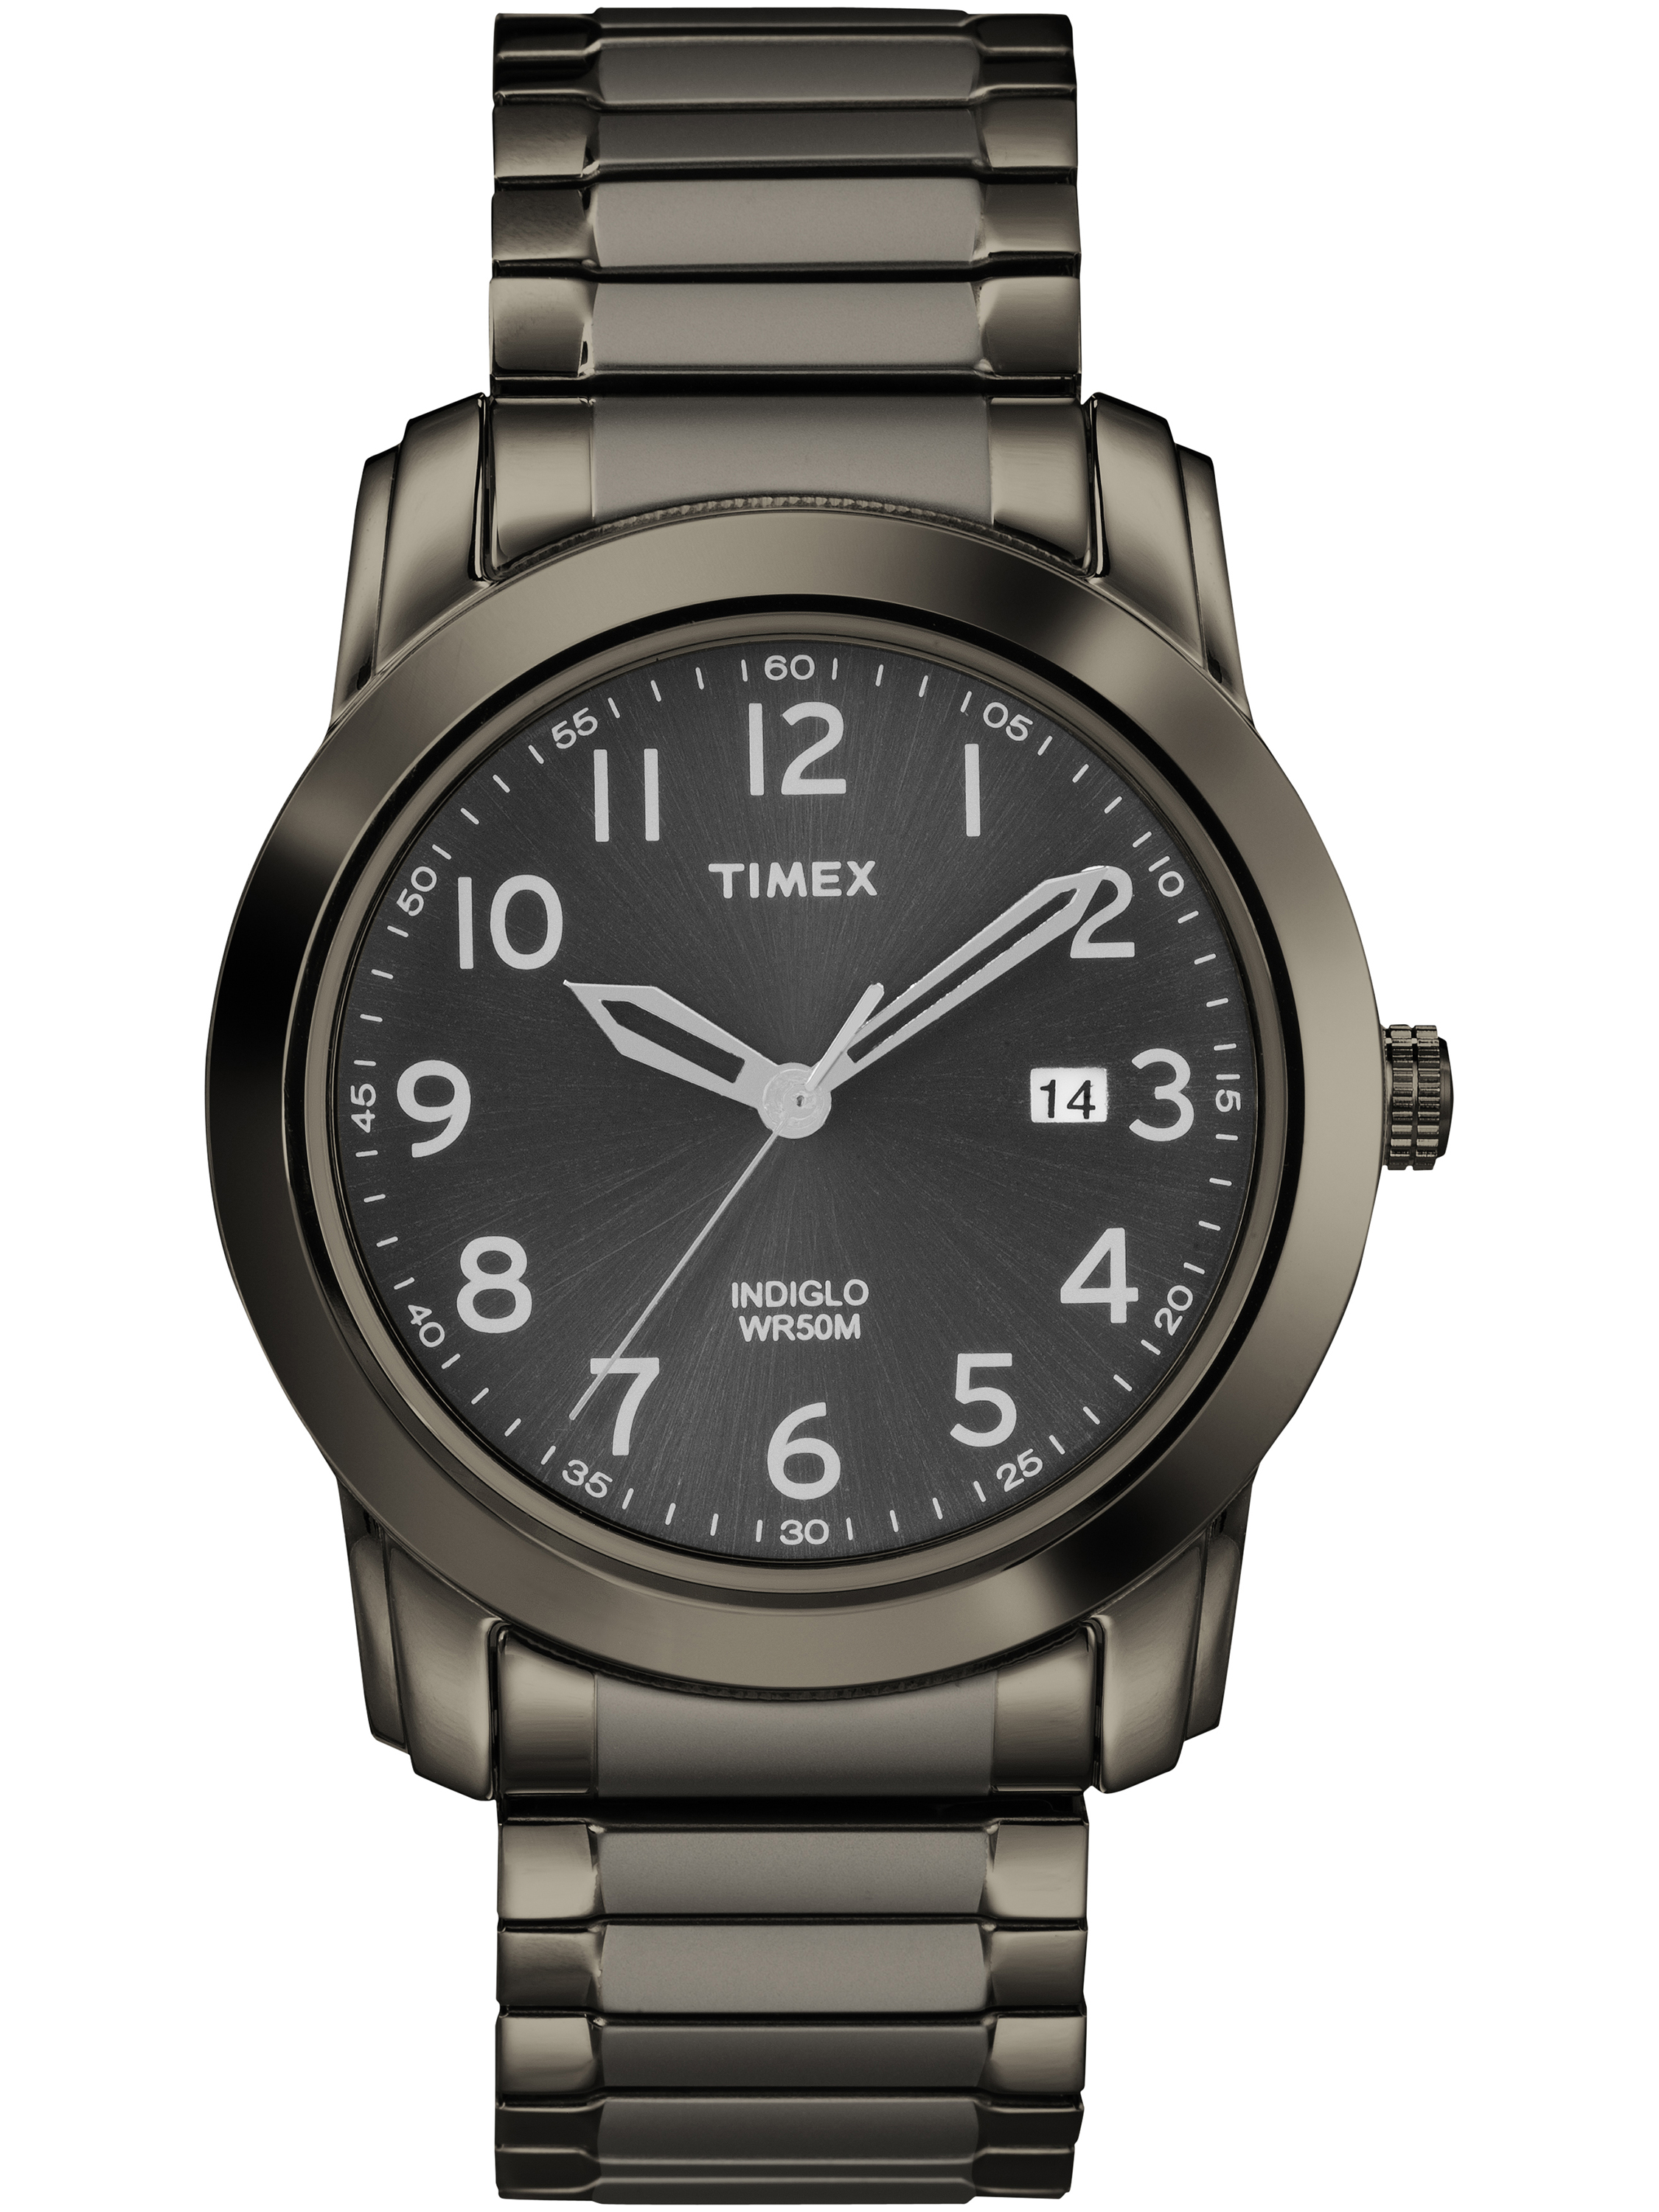 Timex Men's Highland Street Watch, Gray Stainless Steel Expansion Band by Timex